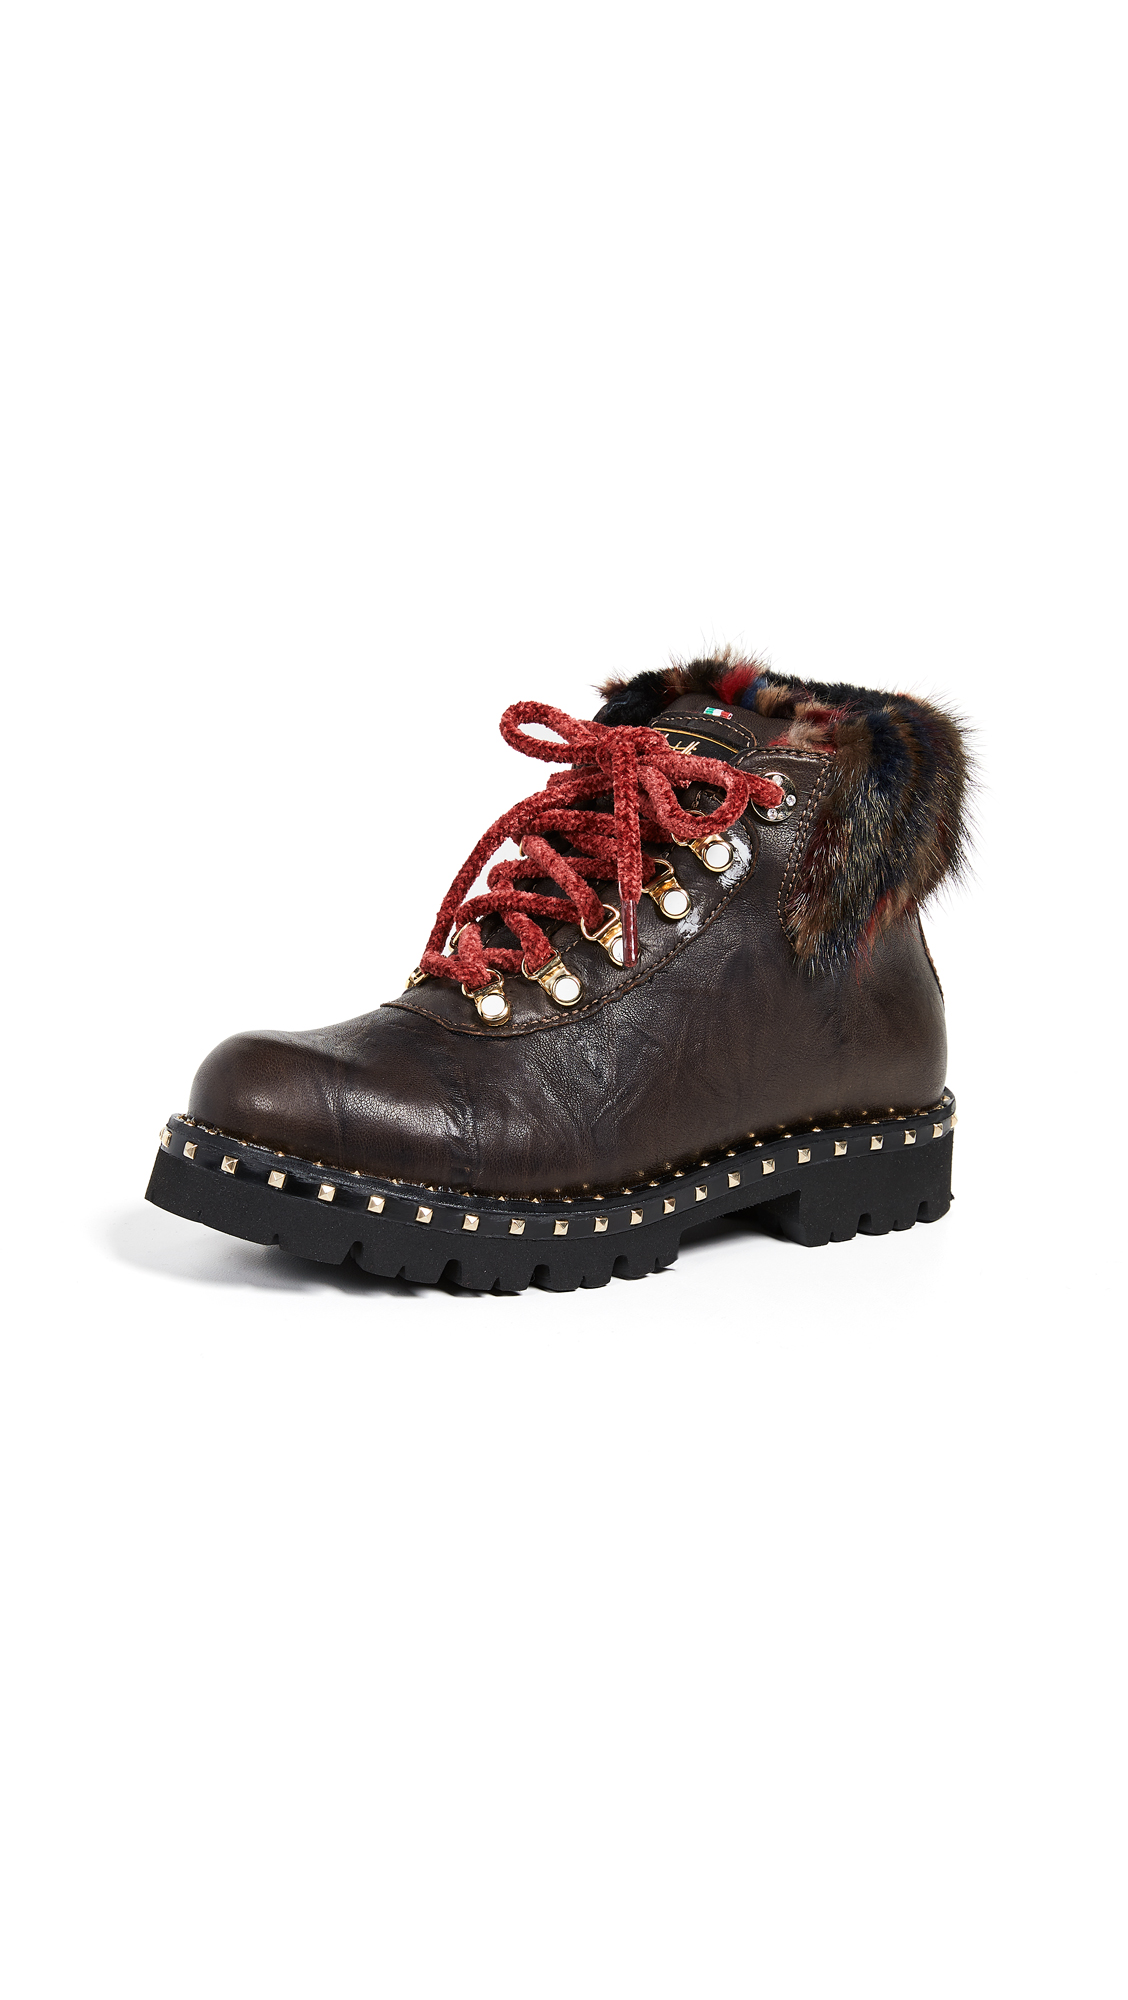 MONTELLIANA Nawra Hiker Boots in Dark Brown/Black